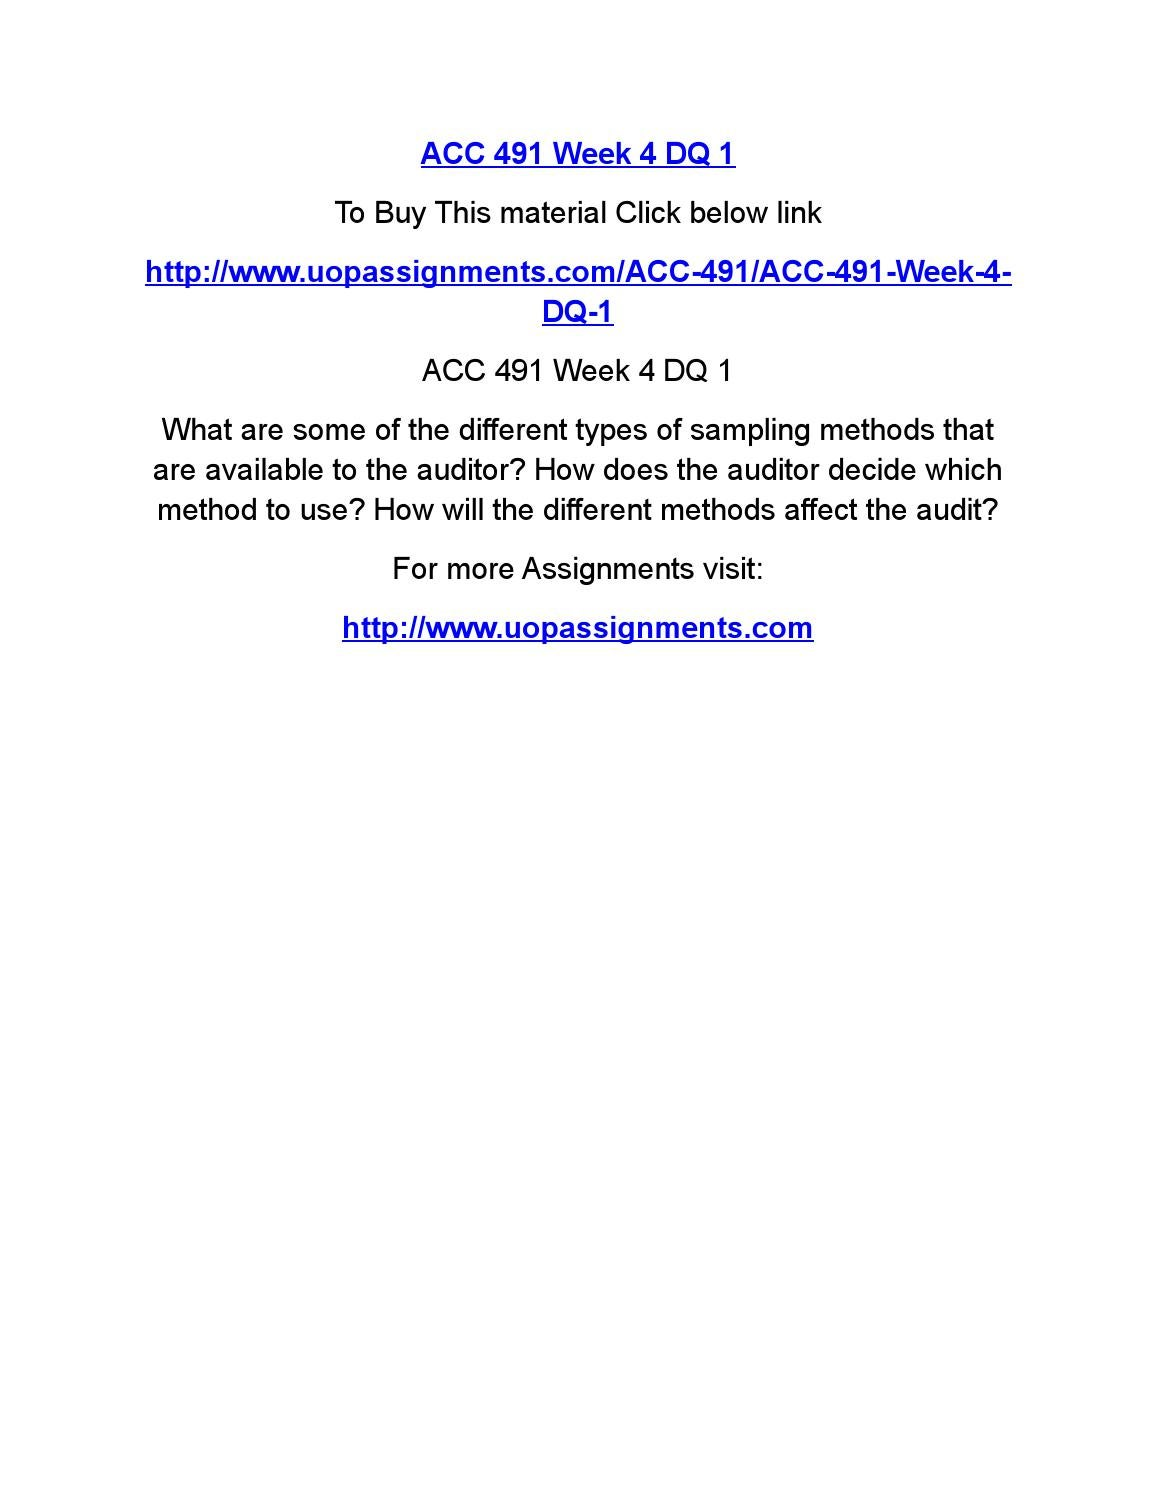 acc 491 week 3 dq 3 Acc 491 entire course for more course tutorials visit wwwuoptutorialcom acc 491 week 1 individual assignment generally accepted auditing standards paper acc 491 week 1 dq 1 acc 491 week 1 dq 2 acc 491 week 2 individual assignments from the text acc 491 week 2 team assignment auditing, attestation,.